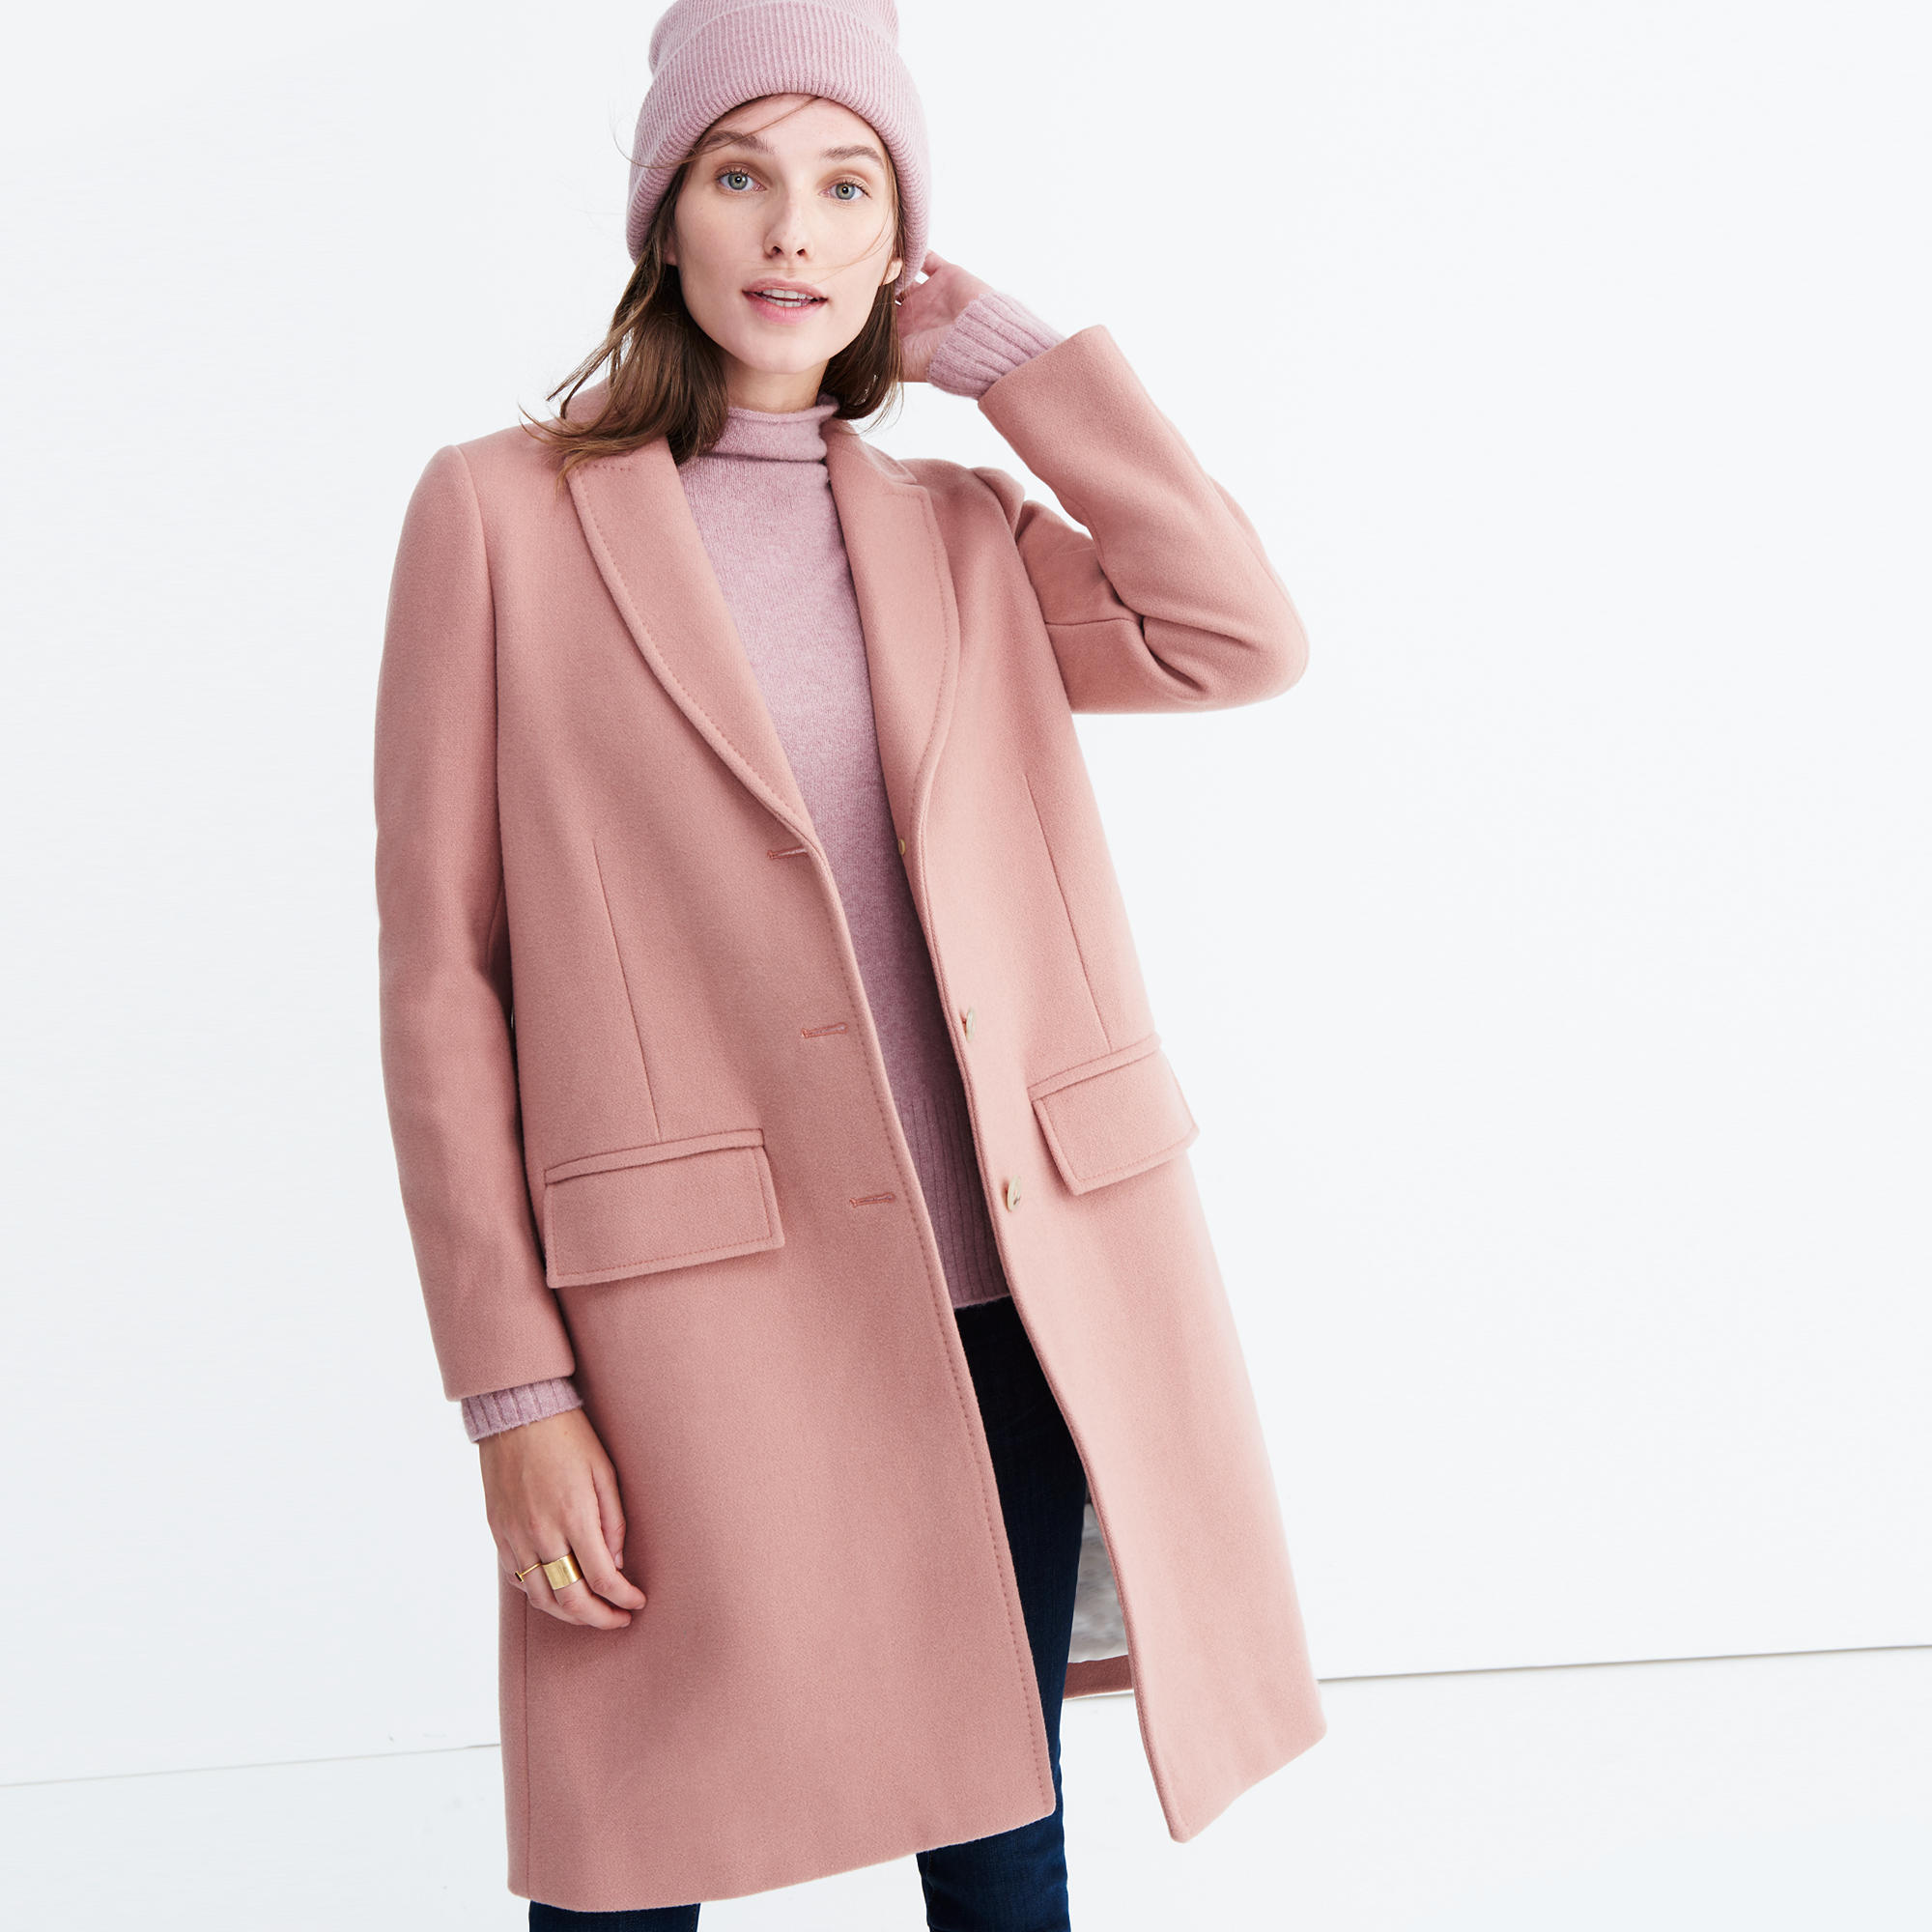 Teatro Swing Coat in Old Rose : coats | Madewell